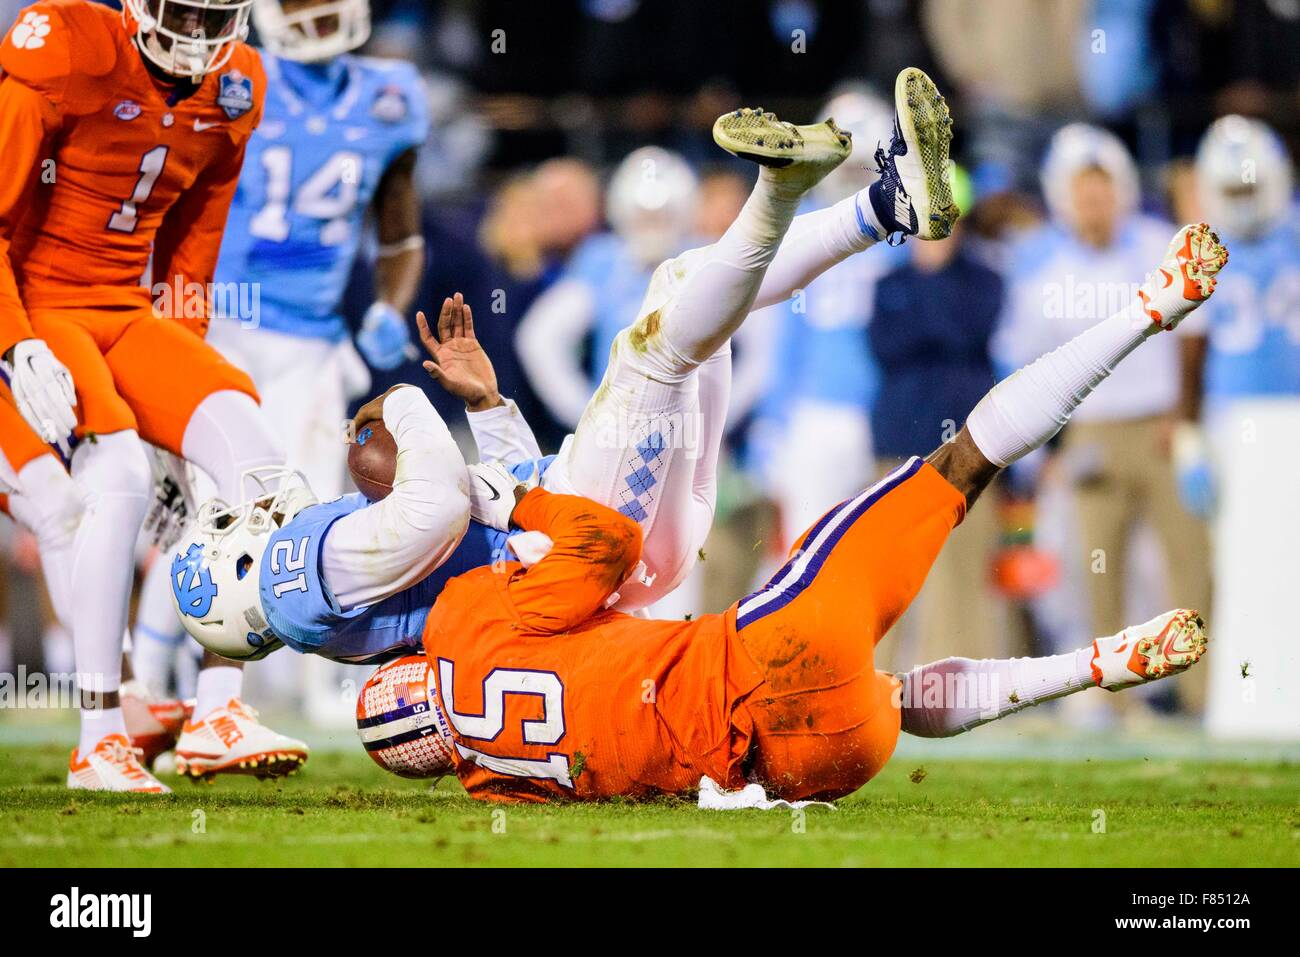 UNC quarterback Marquise Williams (12) is sacked by Clemson safety T.J.  Green (15) during the ACC College Football Championship game between North  Carolina and Clemson on Saturday Dec. 5, 2015 at Bank